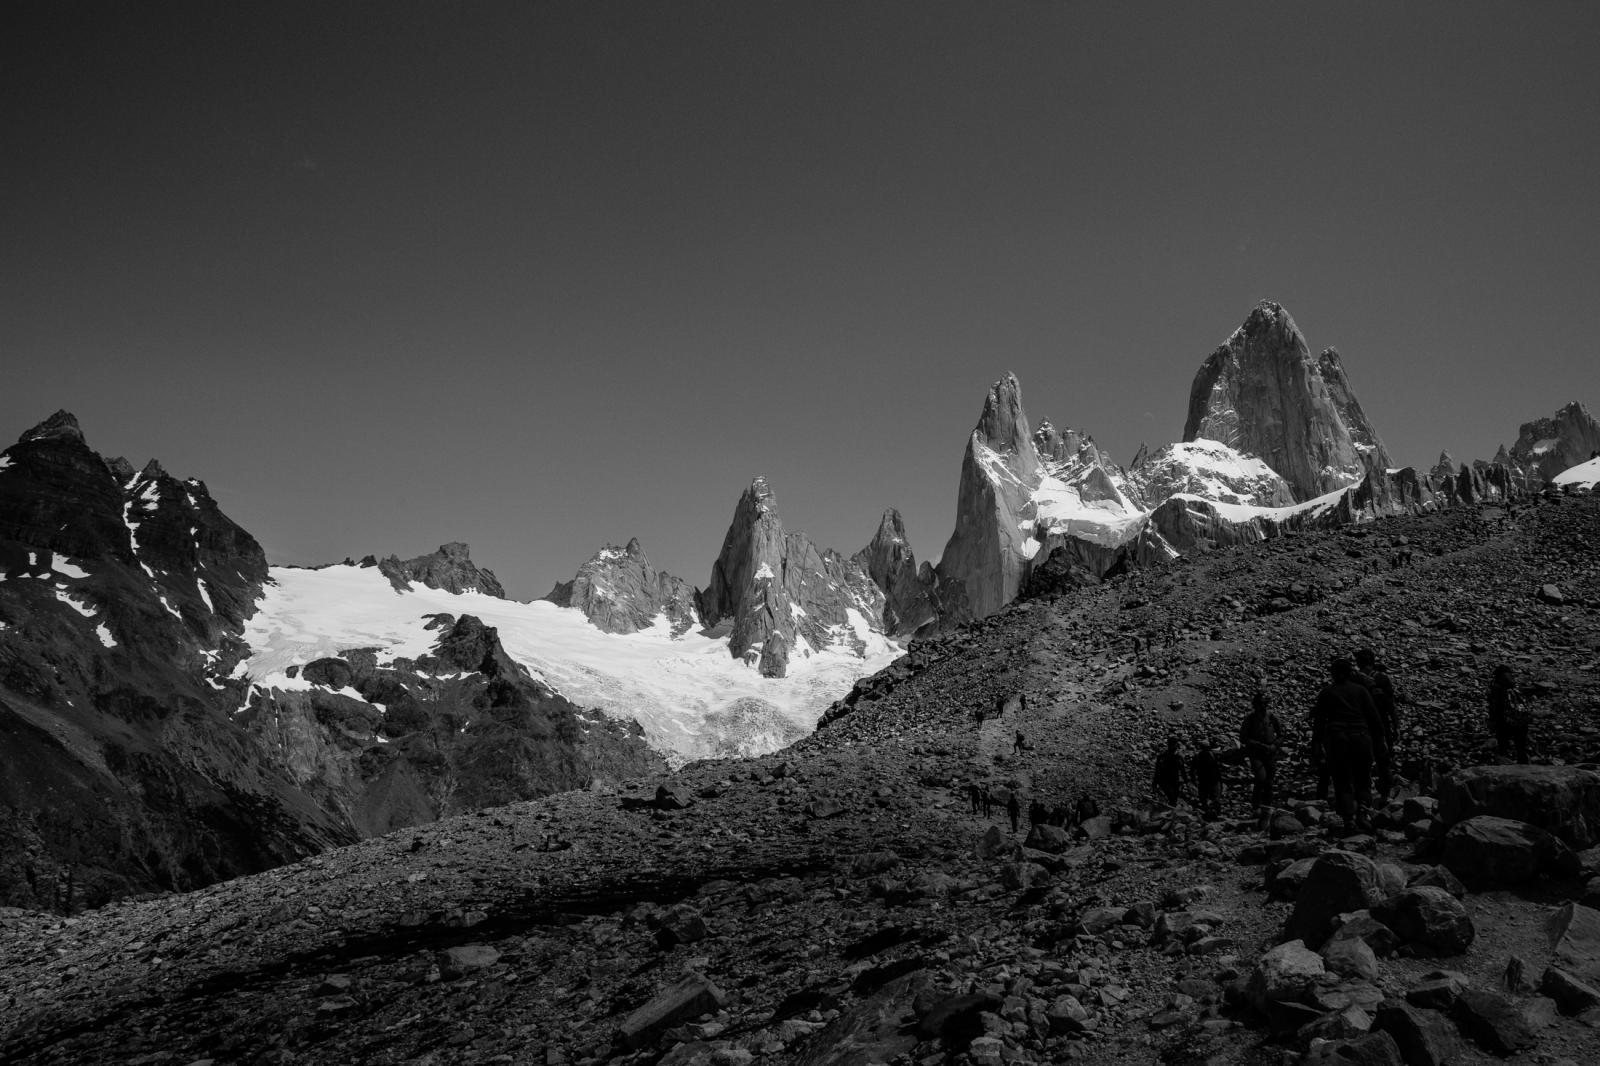 the ways to Fitz Patagonia is such a unique landscape, it is not by chance, this place is the home of Fitz Roy, also known as Cerro Chaltén on the border between Argentina and Chile. The 3.405m granite was first climbed in 1952 by French alpinists Lionel Terray and Guido Magnone. It is enough reason to go all the way down just to meet this imponent mountain, but the real truth is Patagonia scenery is mind-blowing, an exceptional sight of some beautiful wild aesthetics of our Earth's nature. This essay is about the surroundings of Fitz Roy, an admiration of its journey, and all the ways that lead you to it.